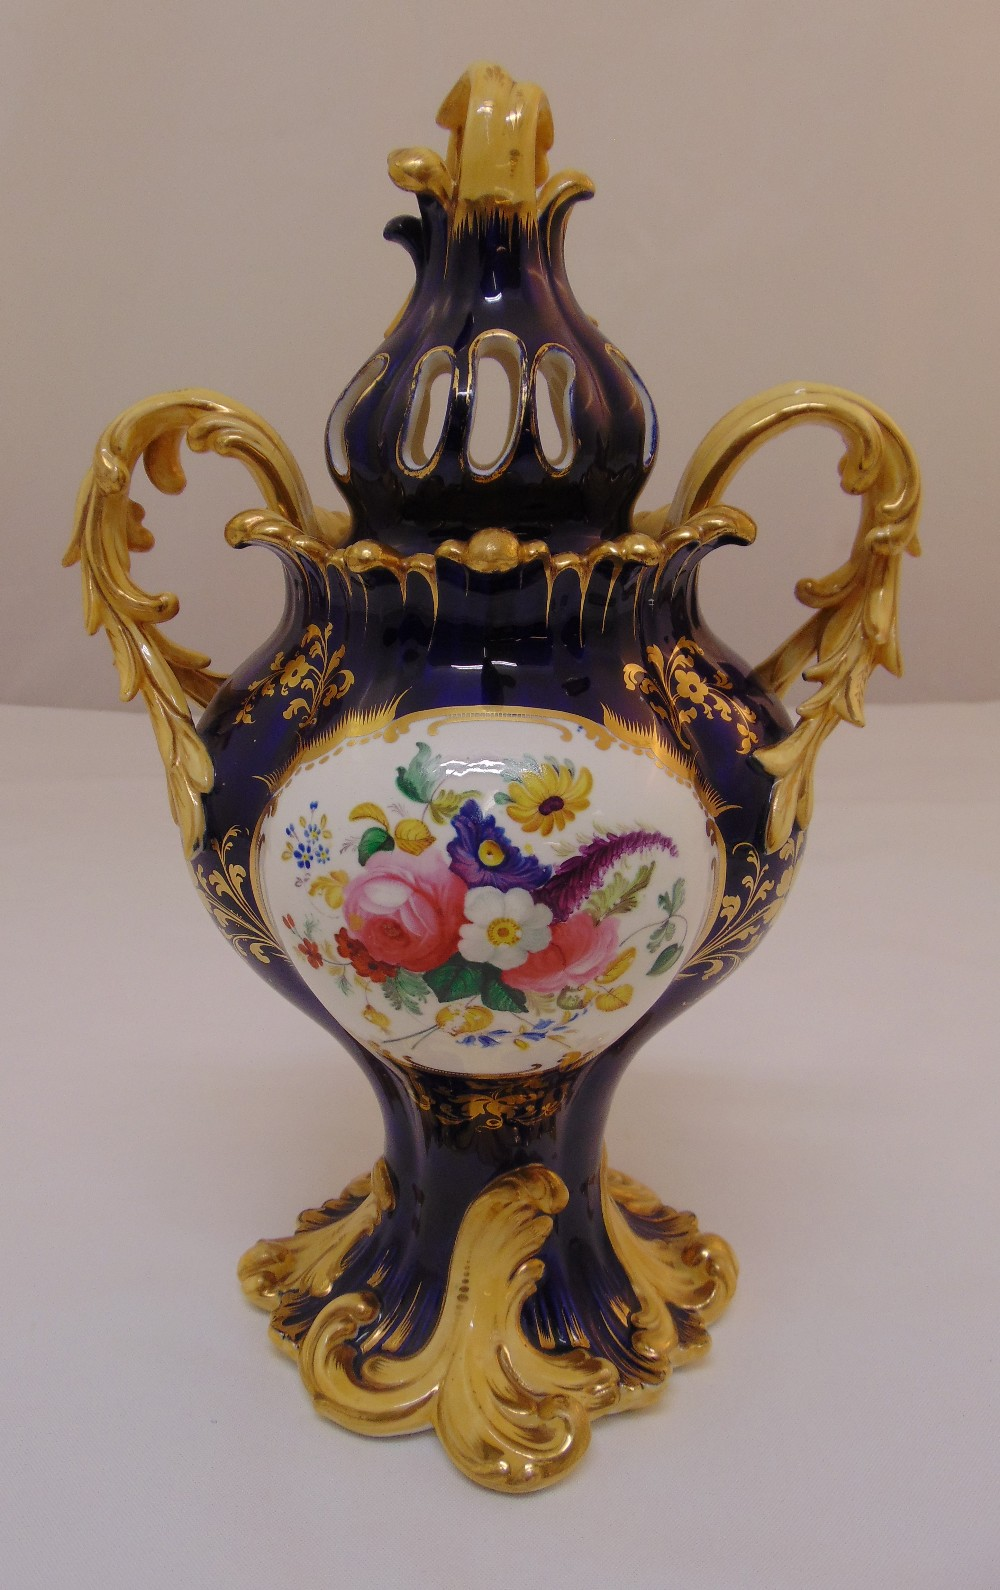 A 19th century Coalport pot pourri vase and cover decorated with panels of floral sprays, a romantic